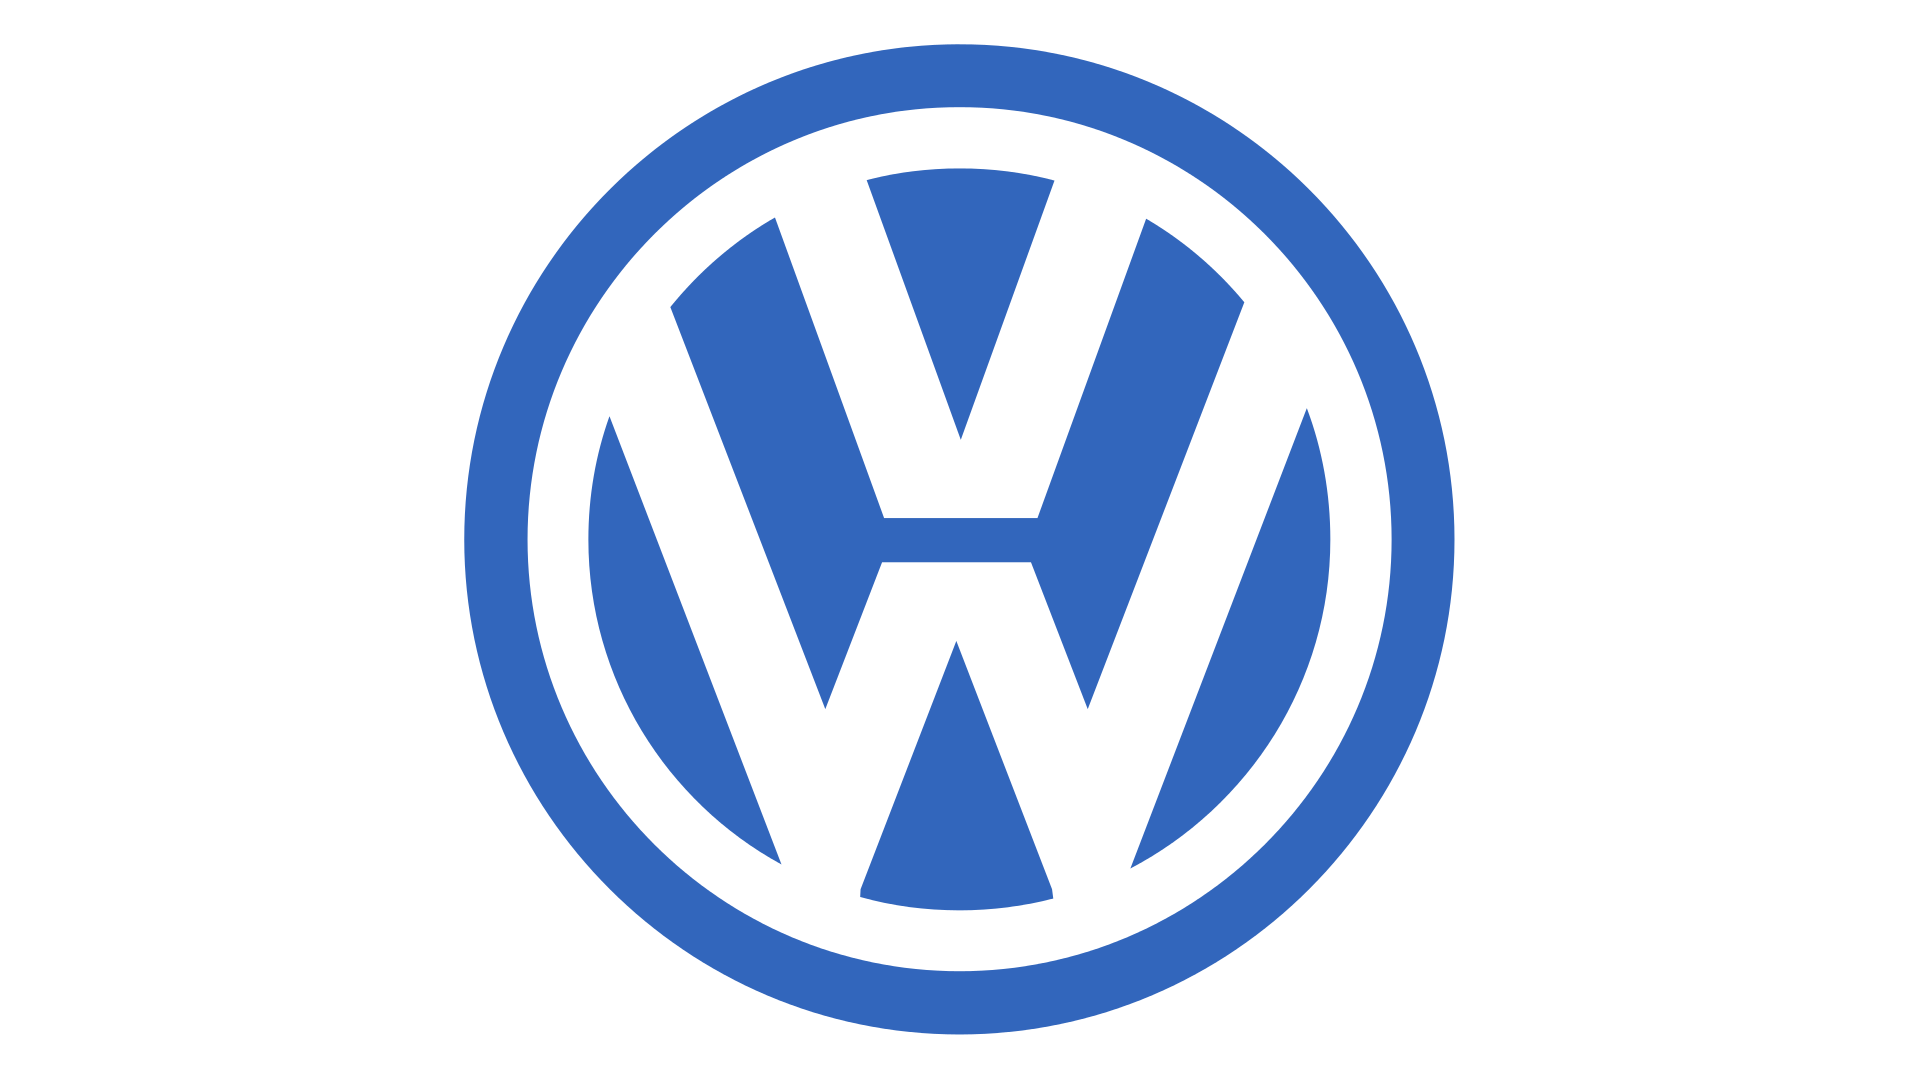 Volkswagen logo photo - 3